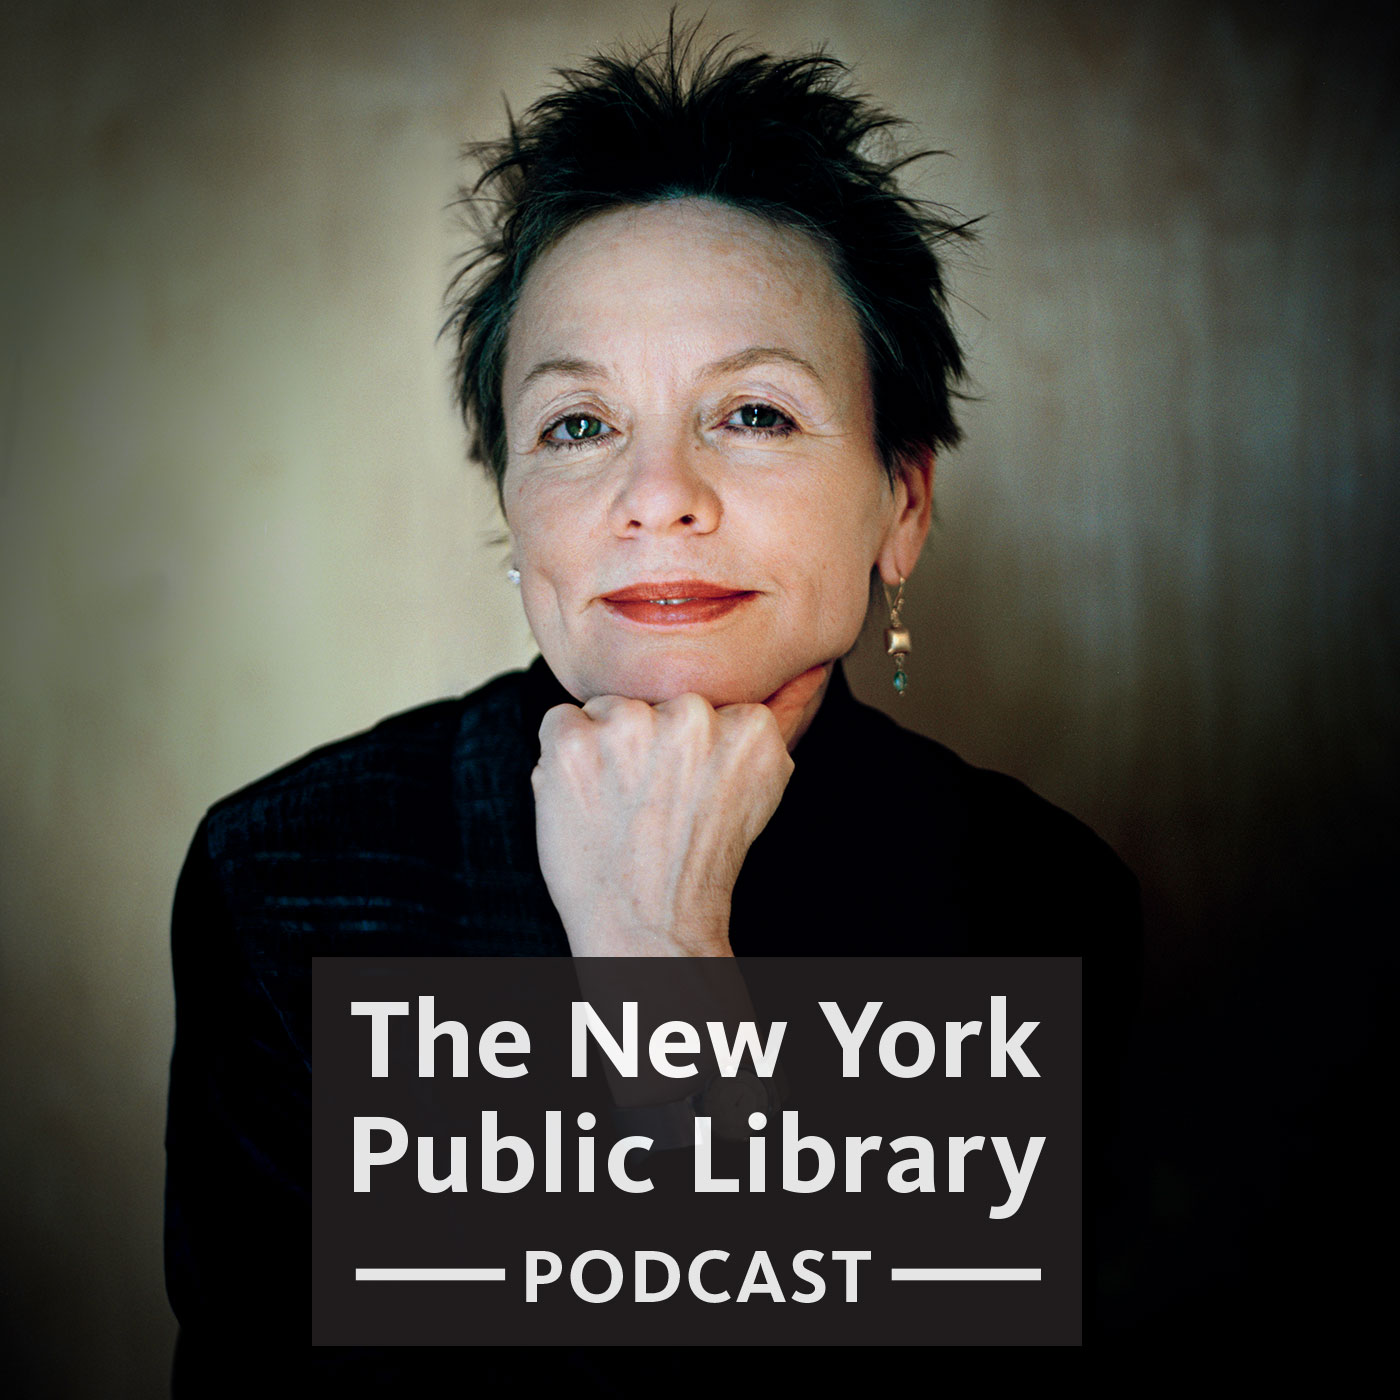 Laurie Anderson on Melville, Opera, and Mystery